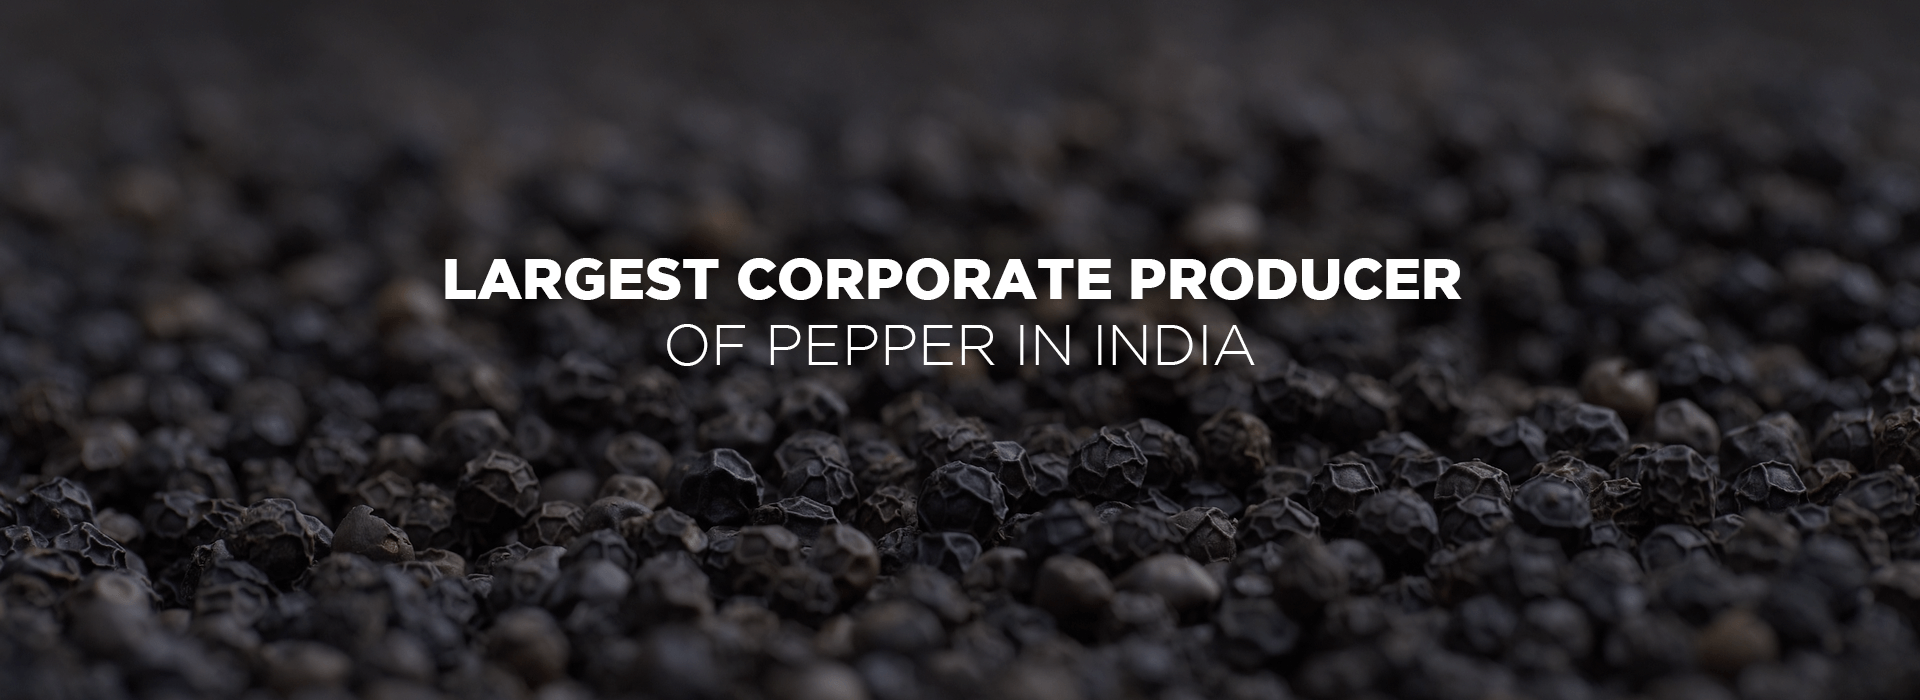 Largest corporate producer of pepper in india